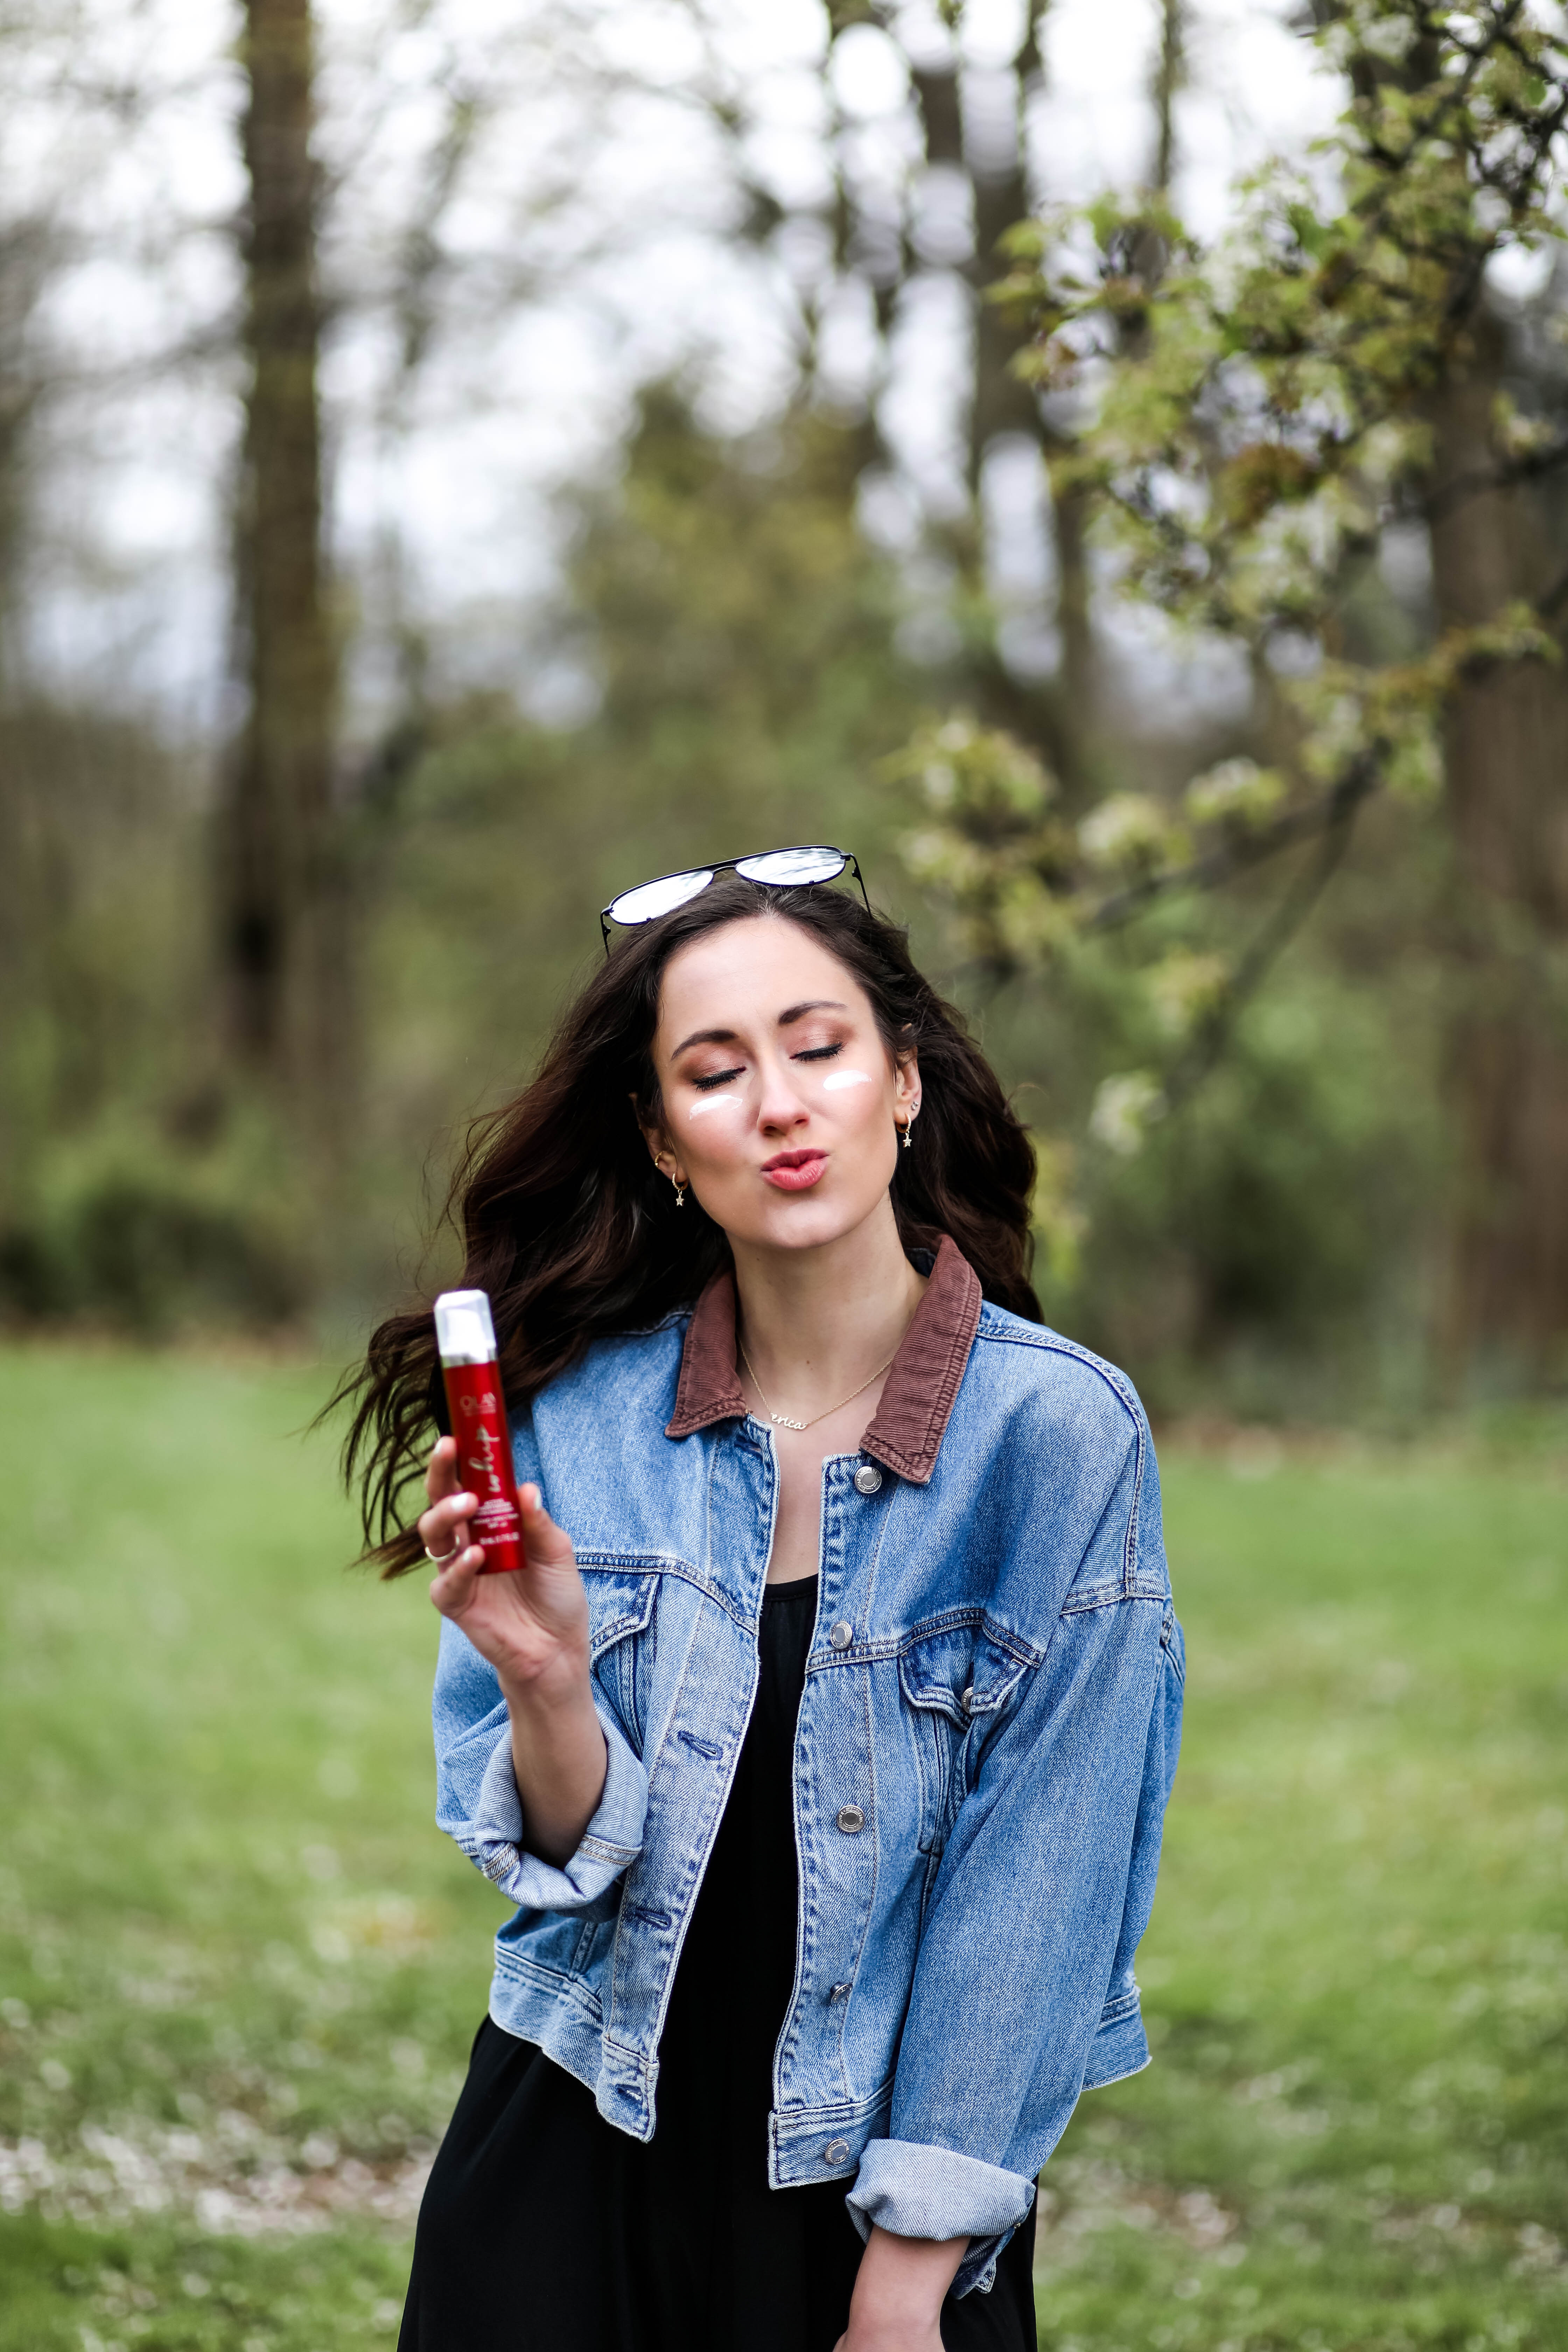 Our Daily Routine in Quarantine - featuring NEW Olay Regenerist Whips with SPF 40!